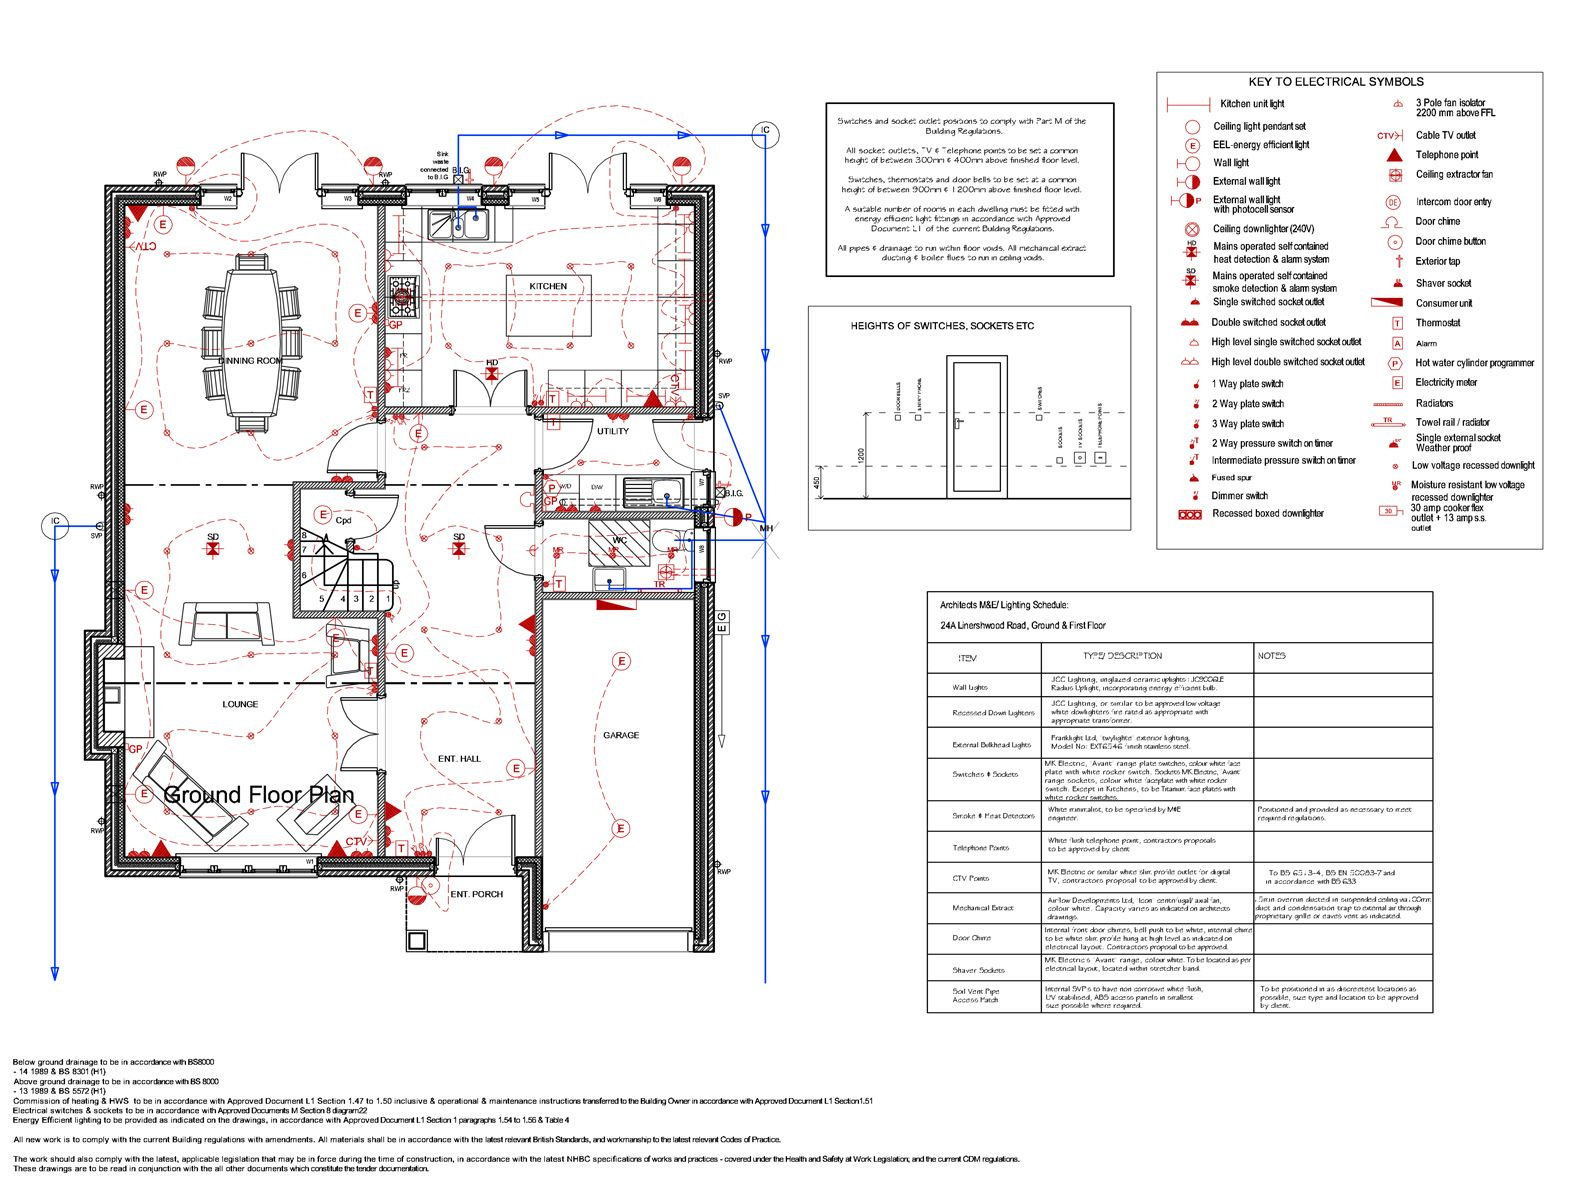 electrical layout examples - Google Search | Electrical | Pinterest ...